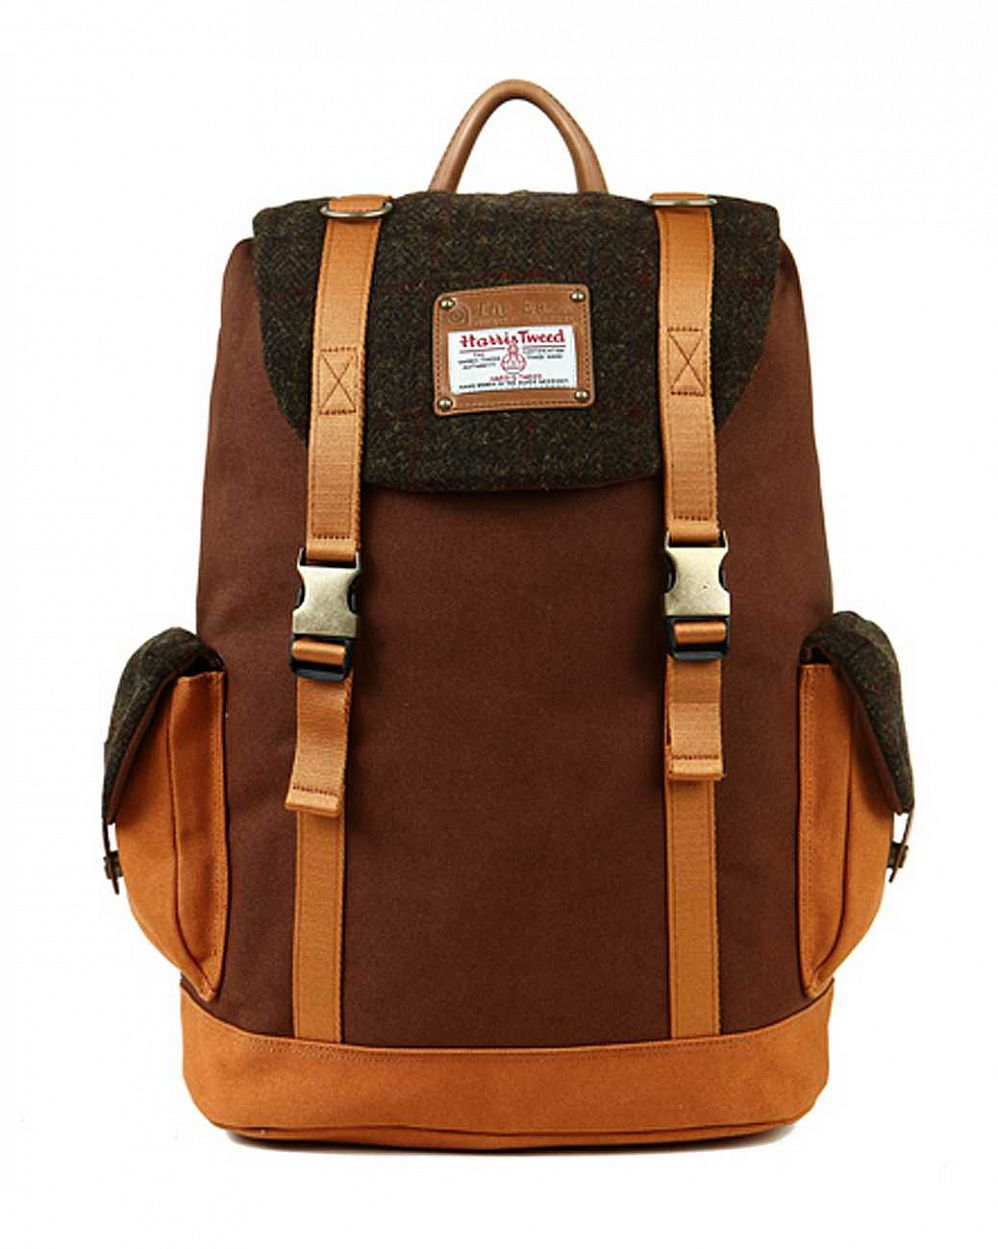 купить Рюкзак The earth Company Harris Tweed (England) Rucksack brown в Москве